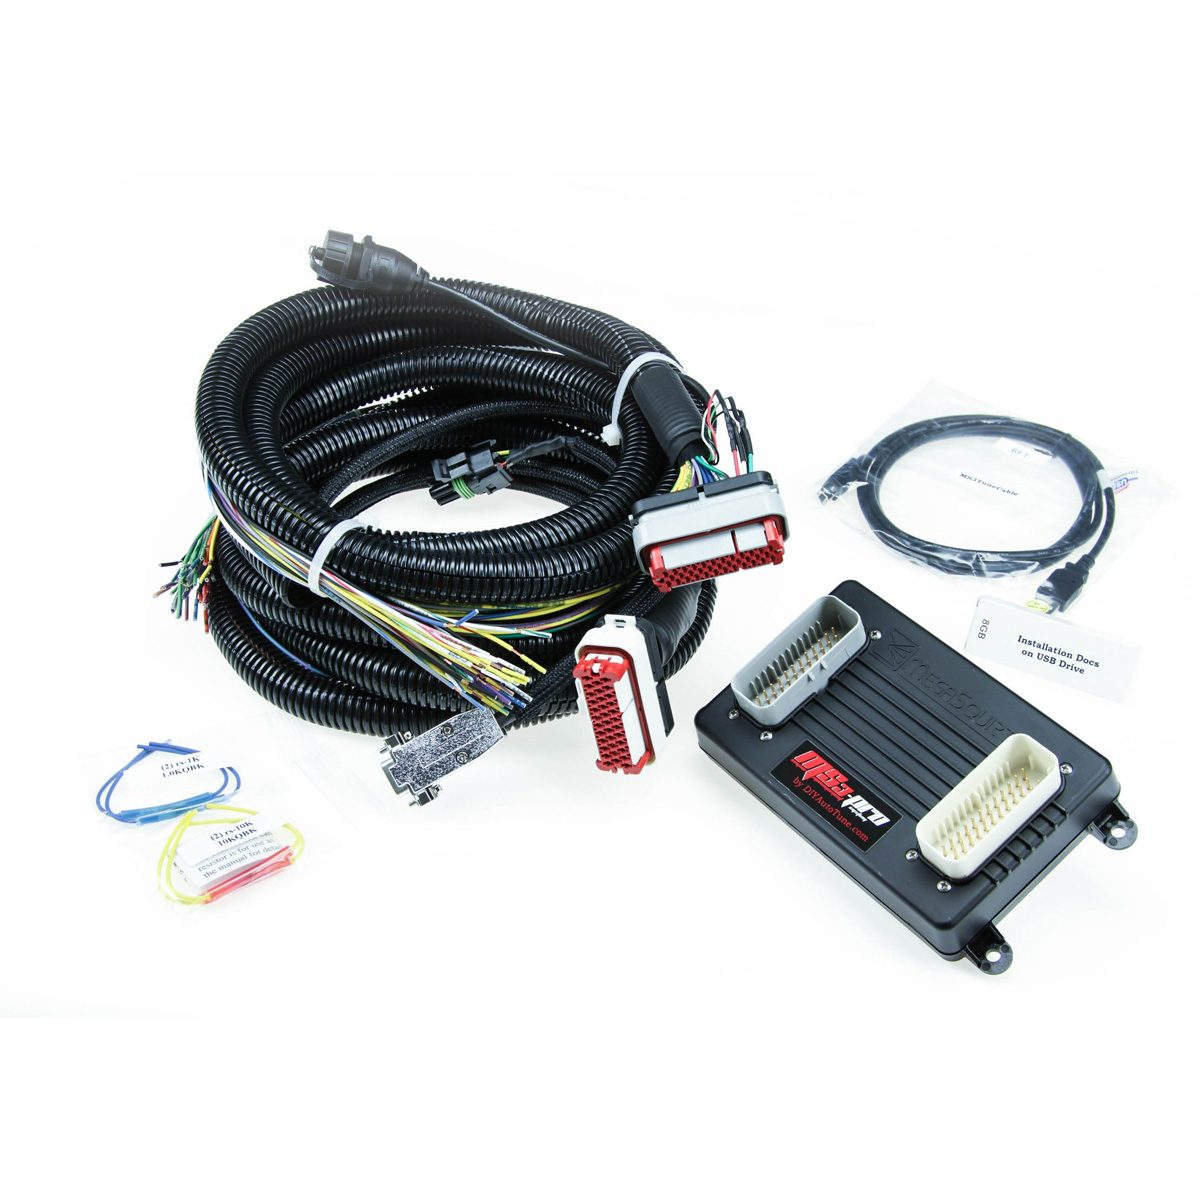 Ecu Wiring Harness Library Mazda Mx 5 Miata Electrical Diagram And Harness05 Home Shop Ms3 Pro Standalone With 8